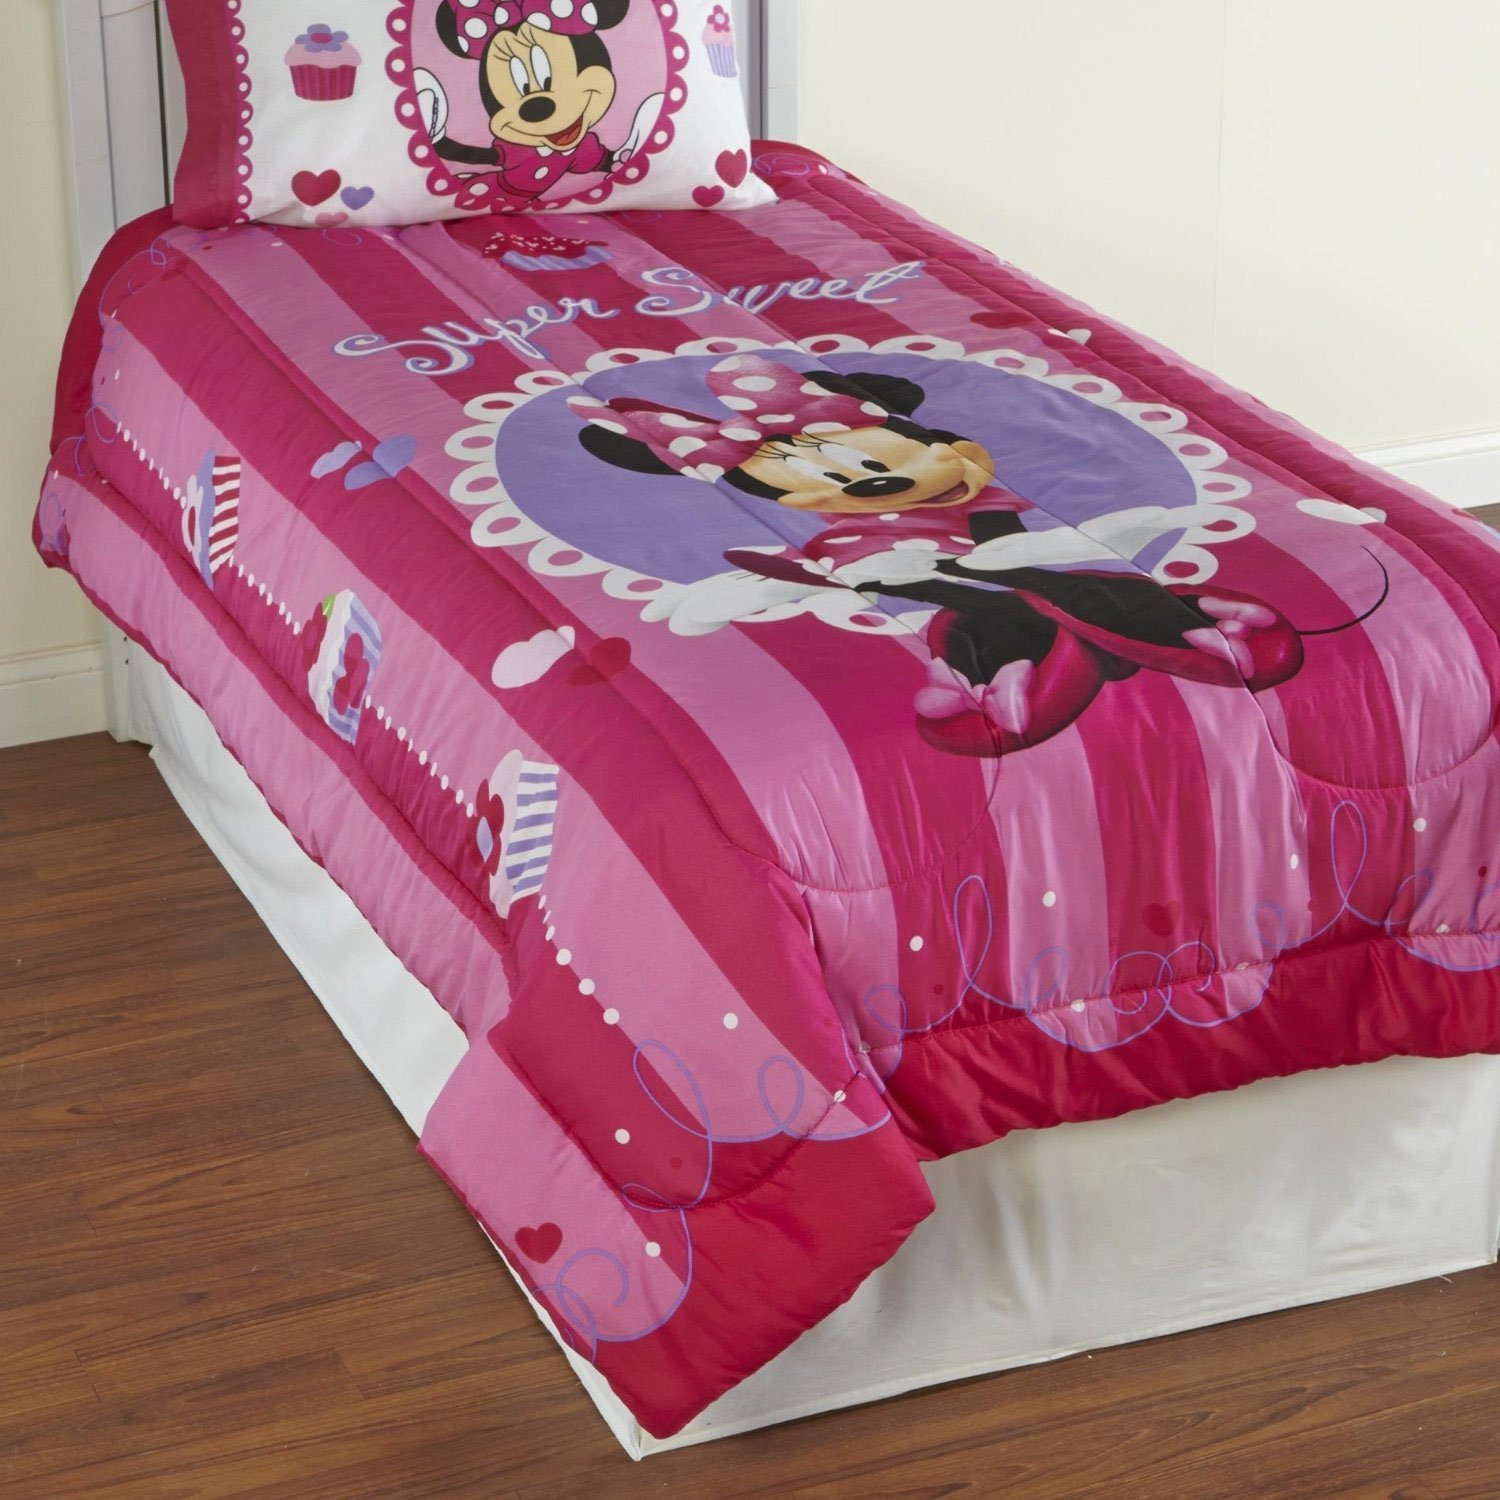 "Disney Minnie Mouse Bowtique Sweet Treats 64"" x 86"" Reversible Twin Reversible Comforter"